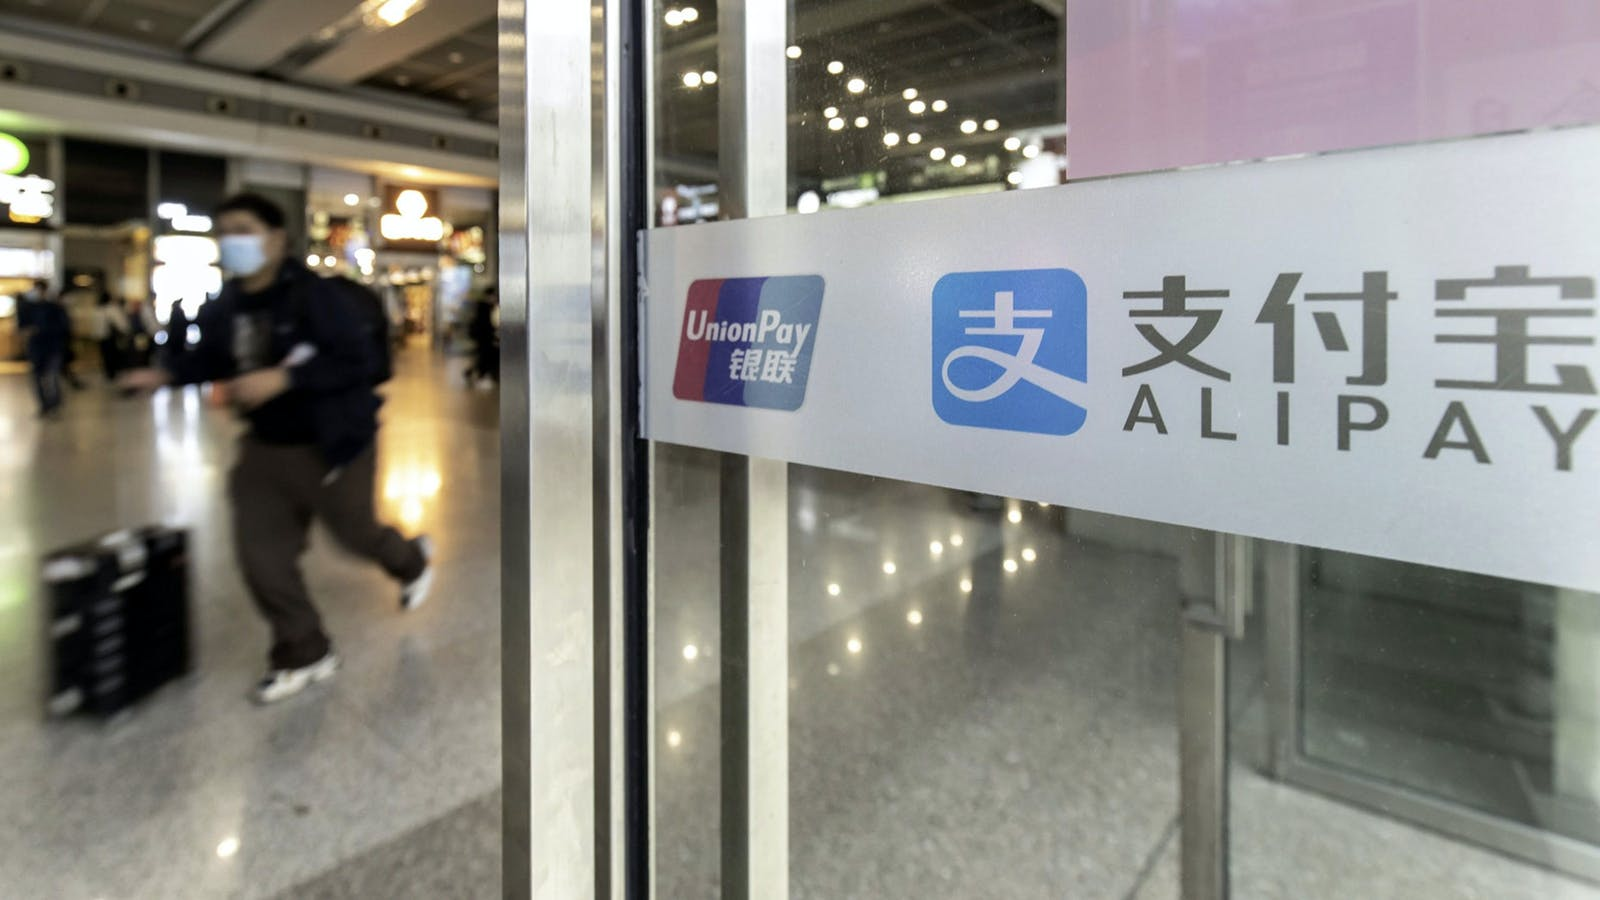 Signs for the Alipay service at a train station in China. Photo by Bloomberg